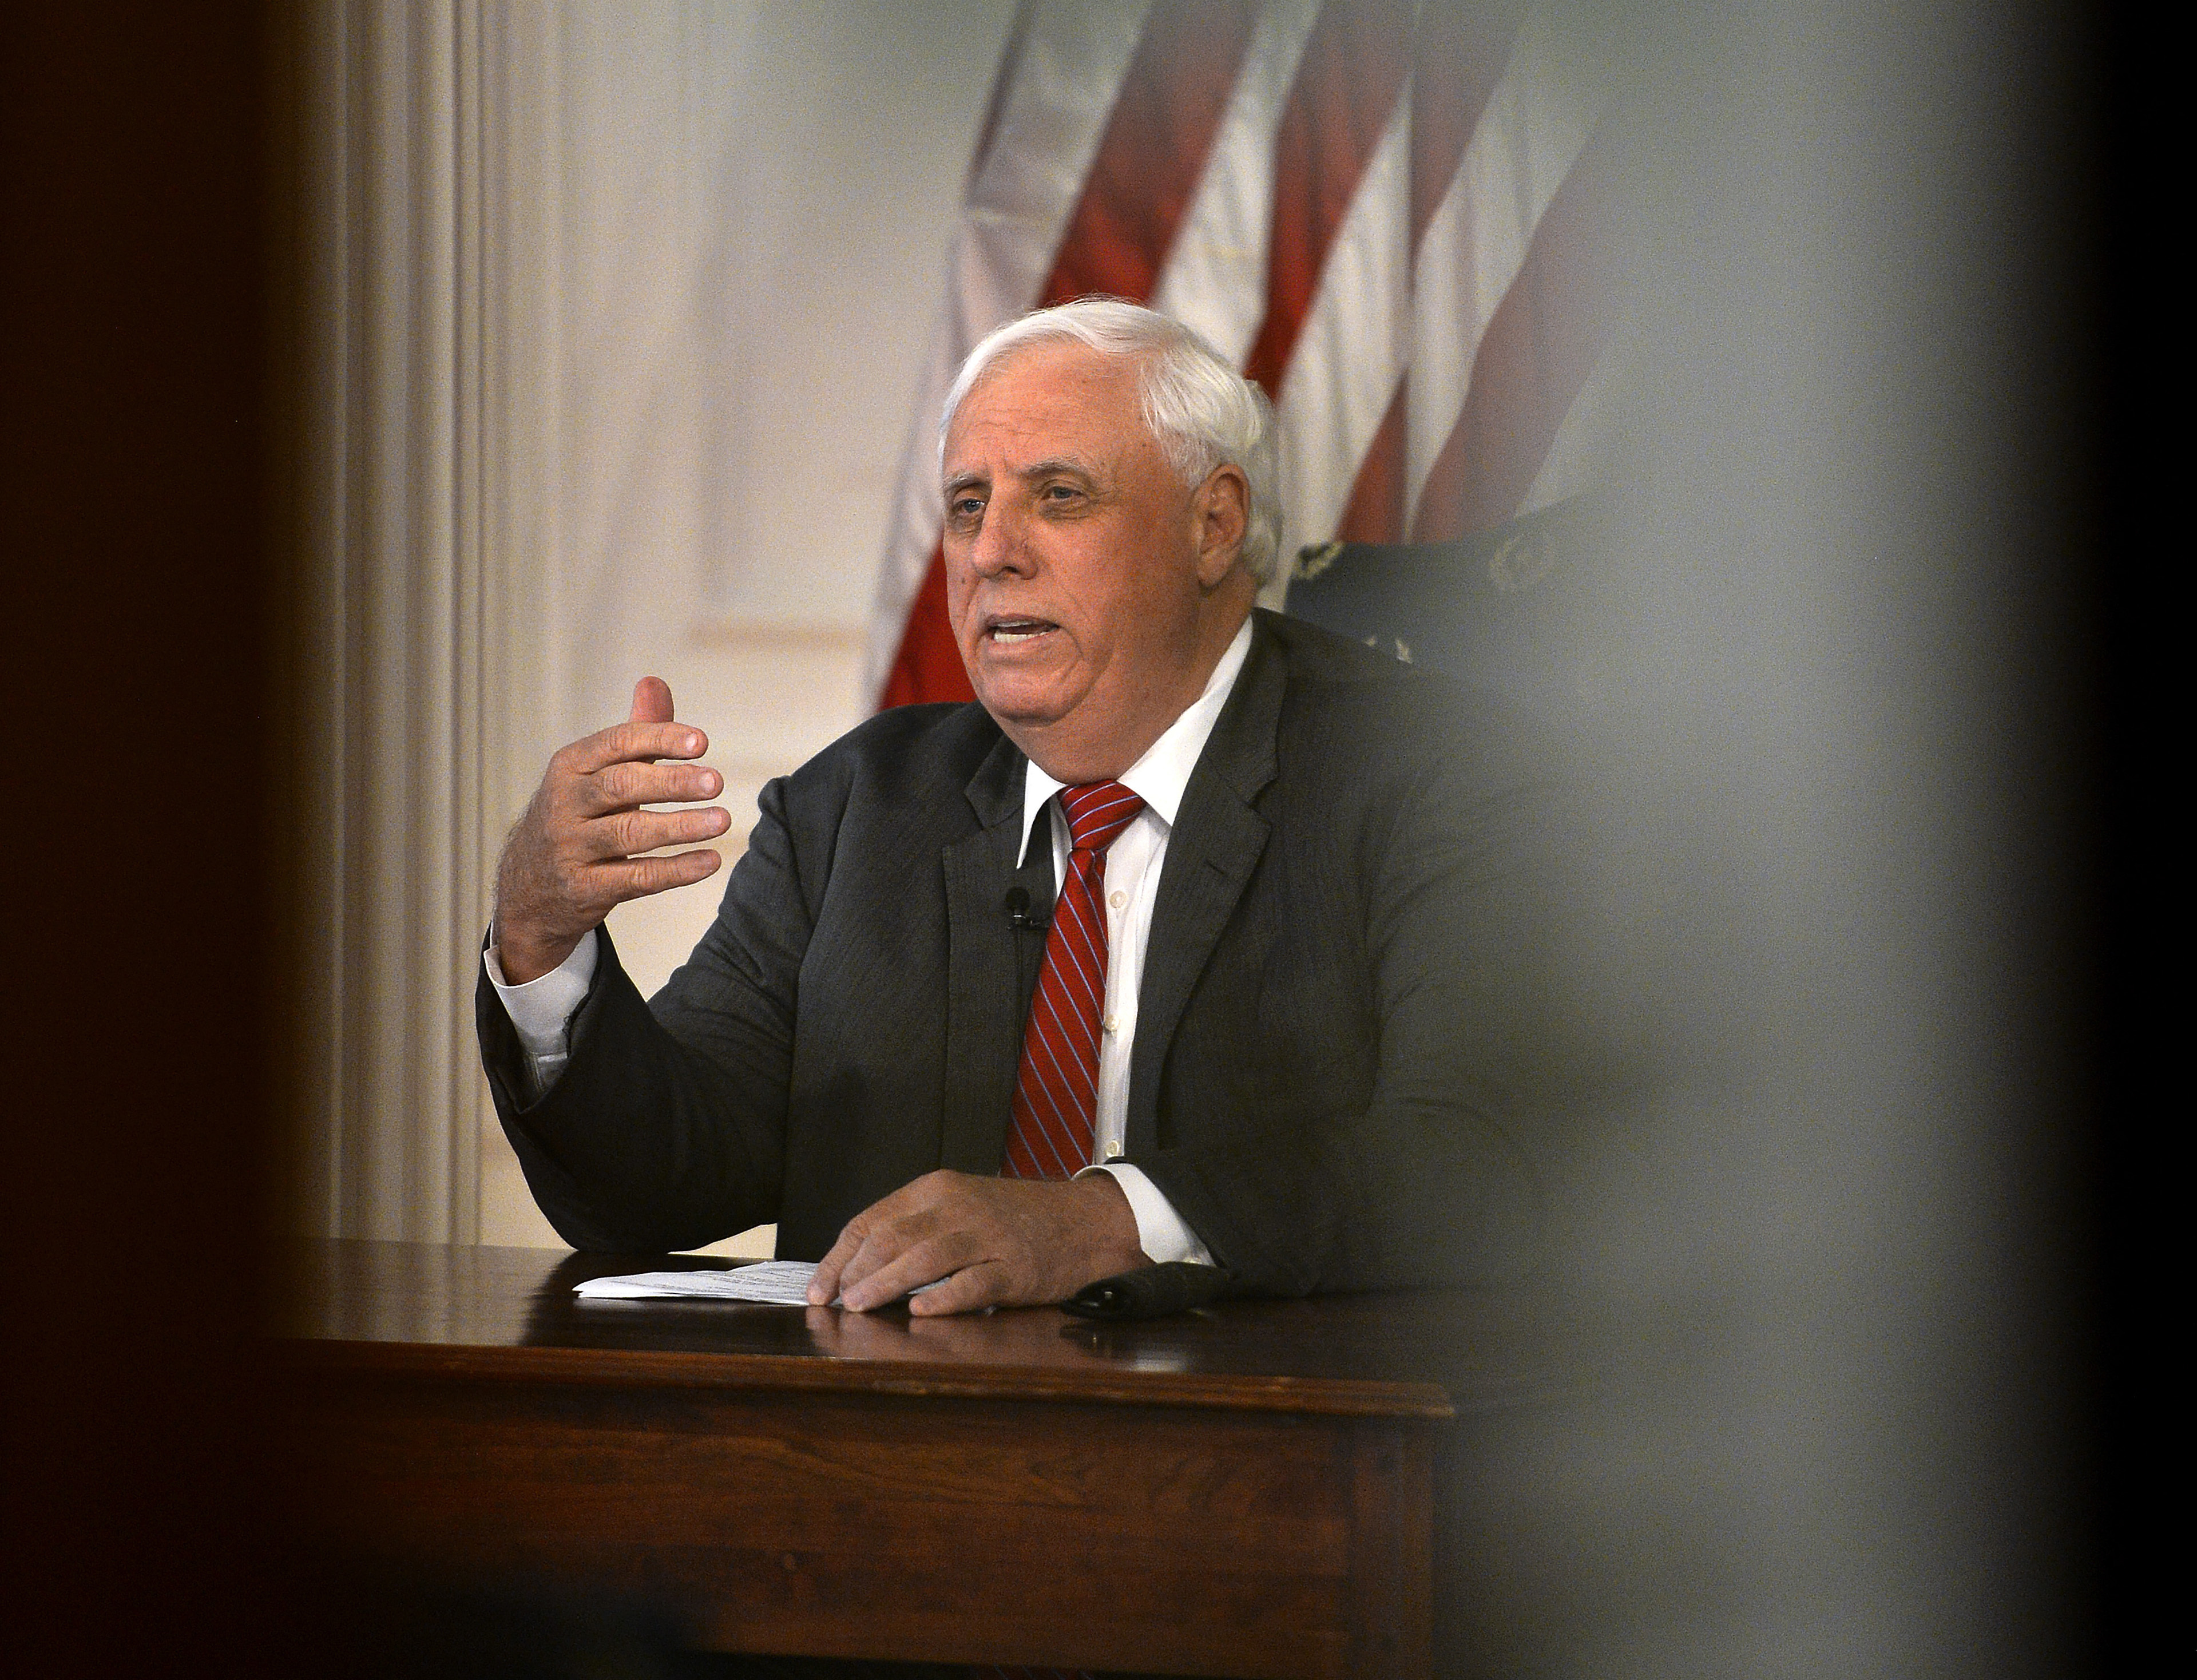 In this March, 23, 2020 file photo West Virginia Gov. Jim Justice issues a coronavirus stay at home order from his office in the State Capitol in Charleston, W. Va.